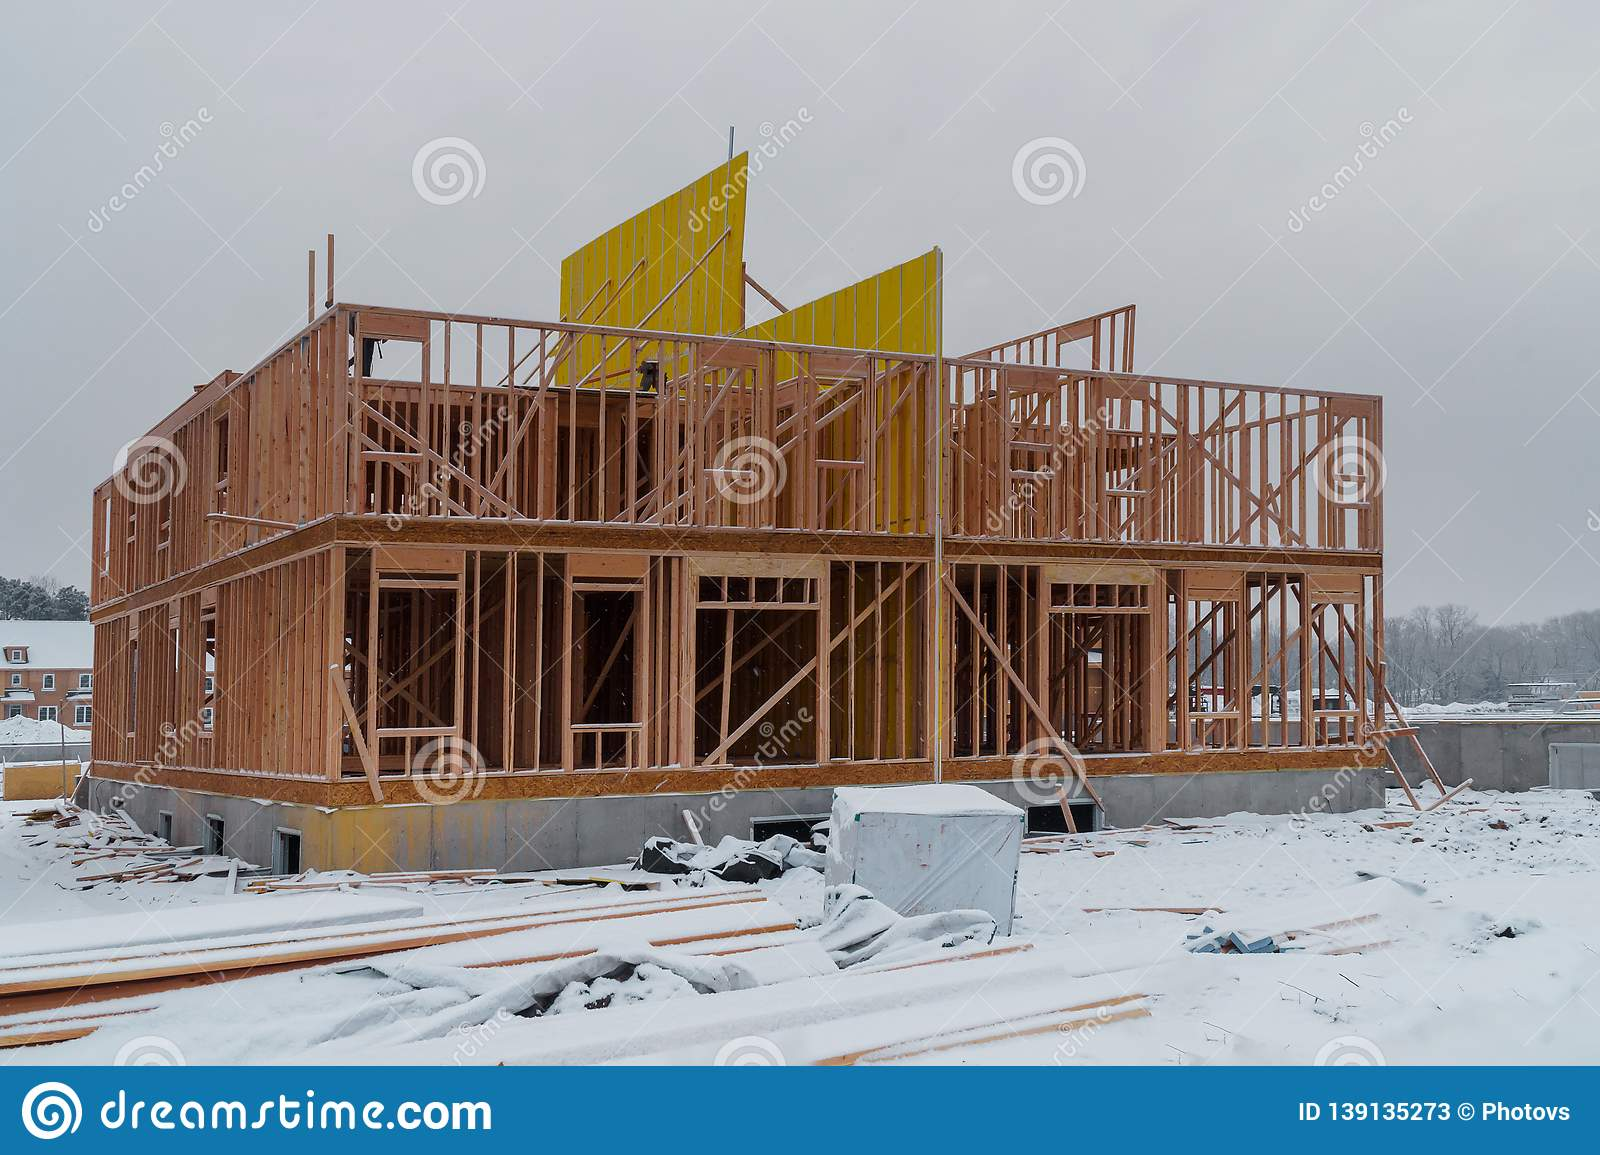 Building of New Home Construction exterior wood beam construction